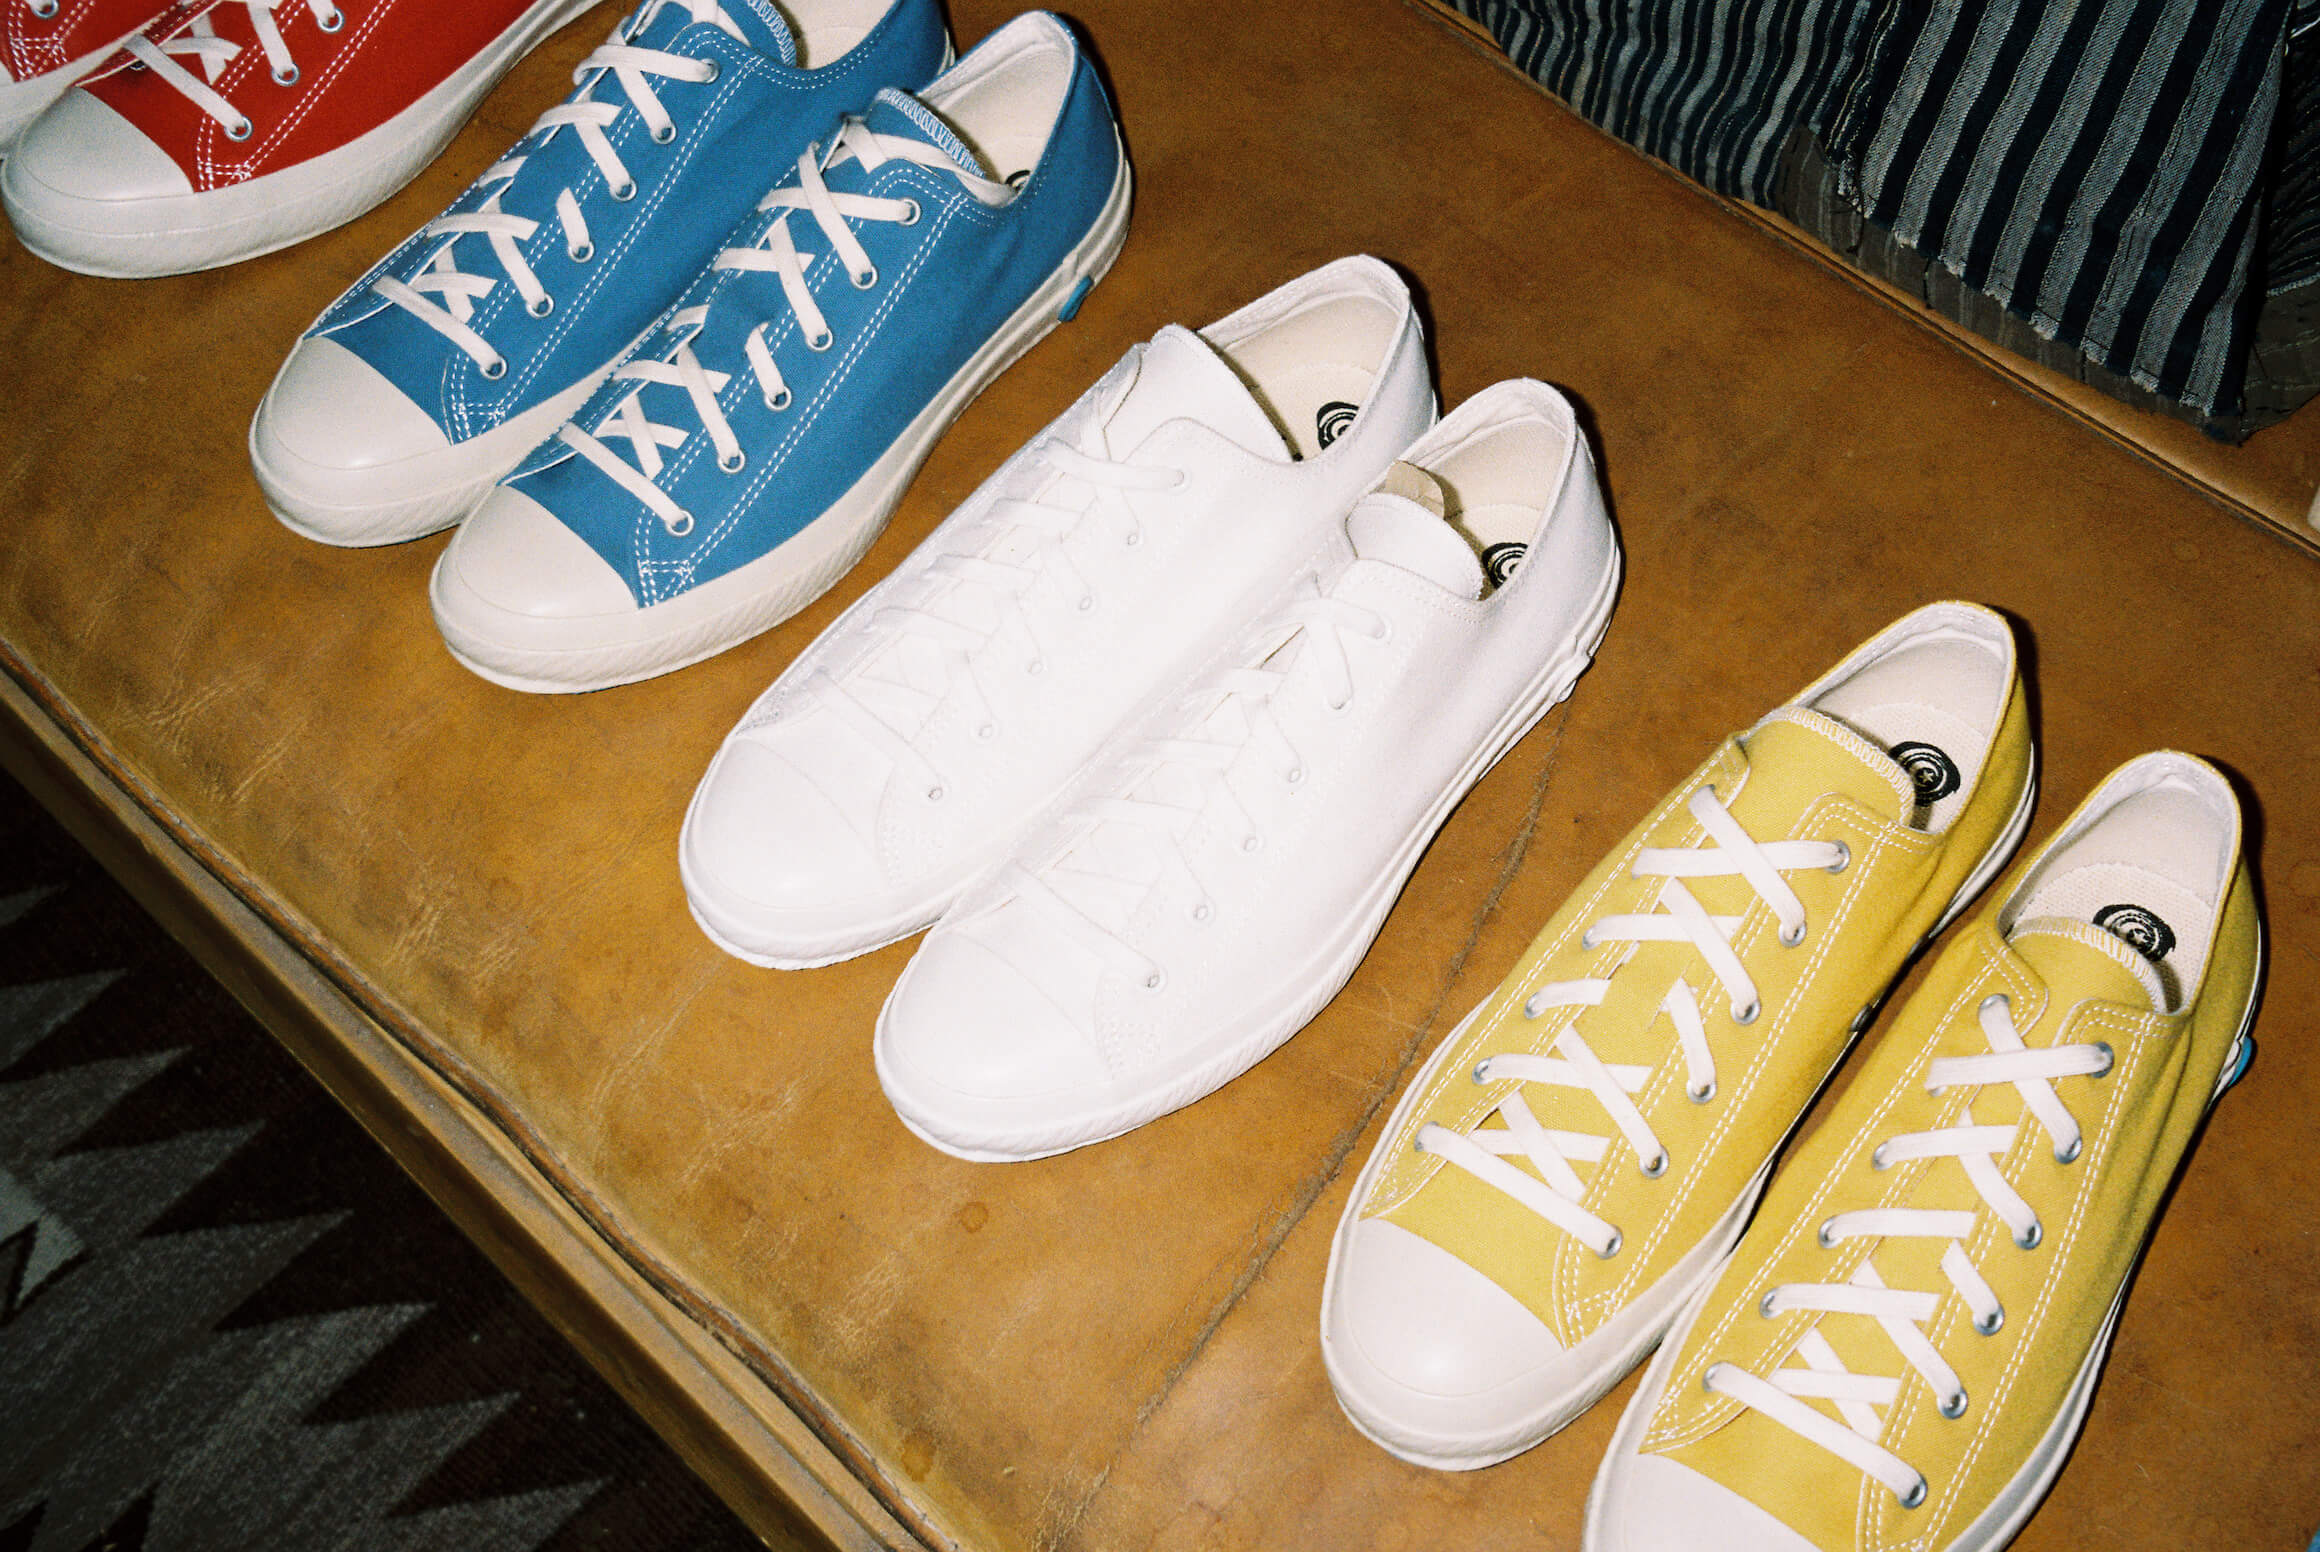 shoes like pottery CLOTH NATURAL DYE LO-TOP SNEAKERs